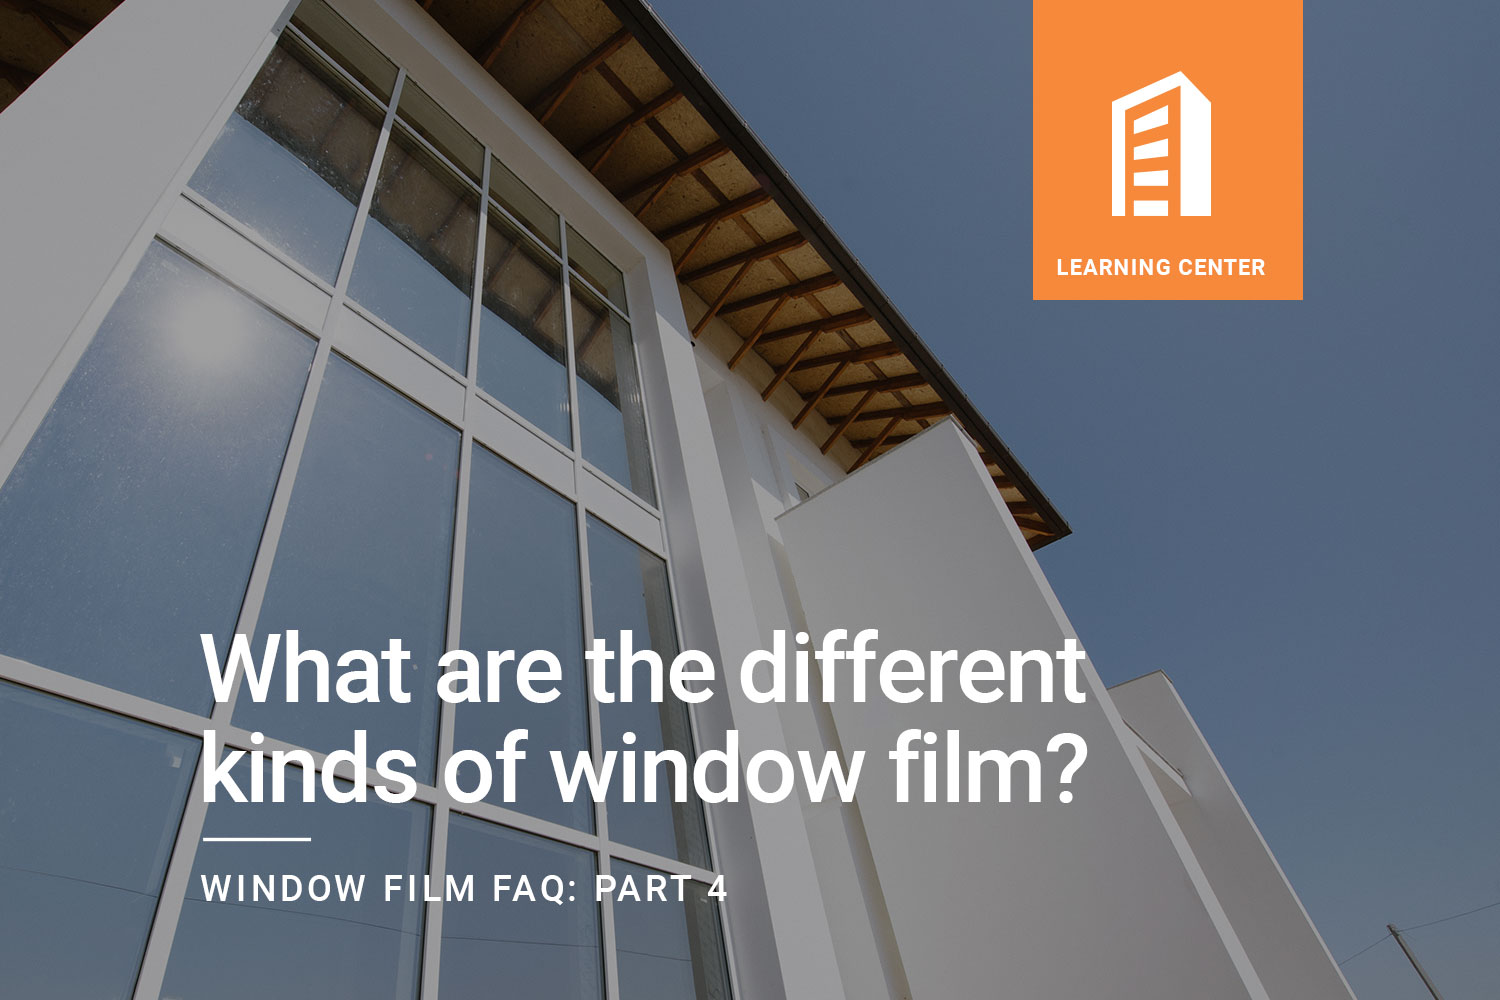 Window Film FAQ: What Are The Different Kinds of Window Film?